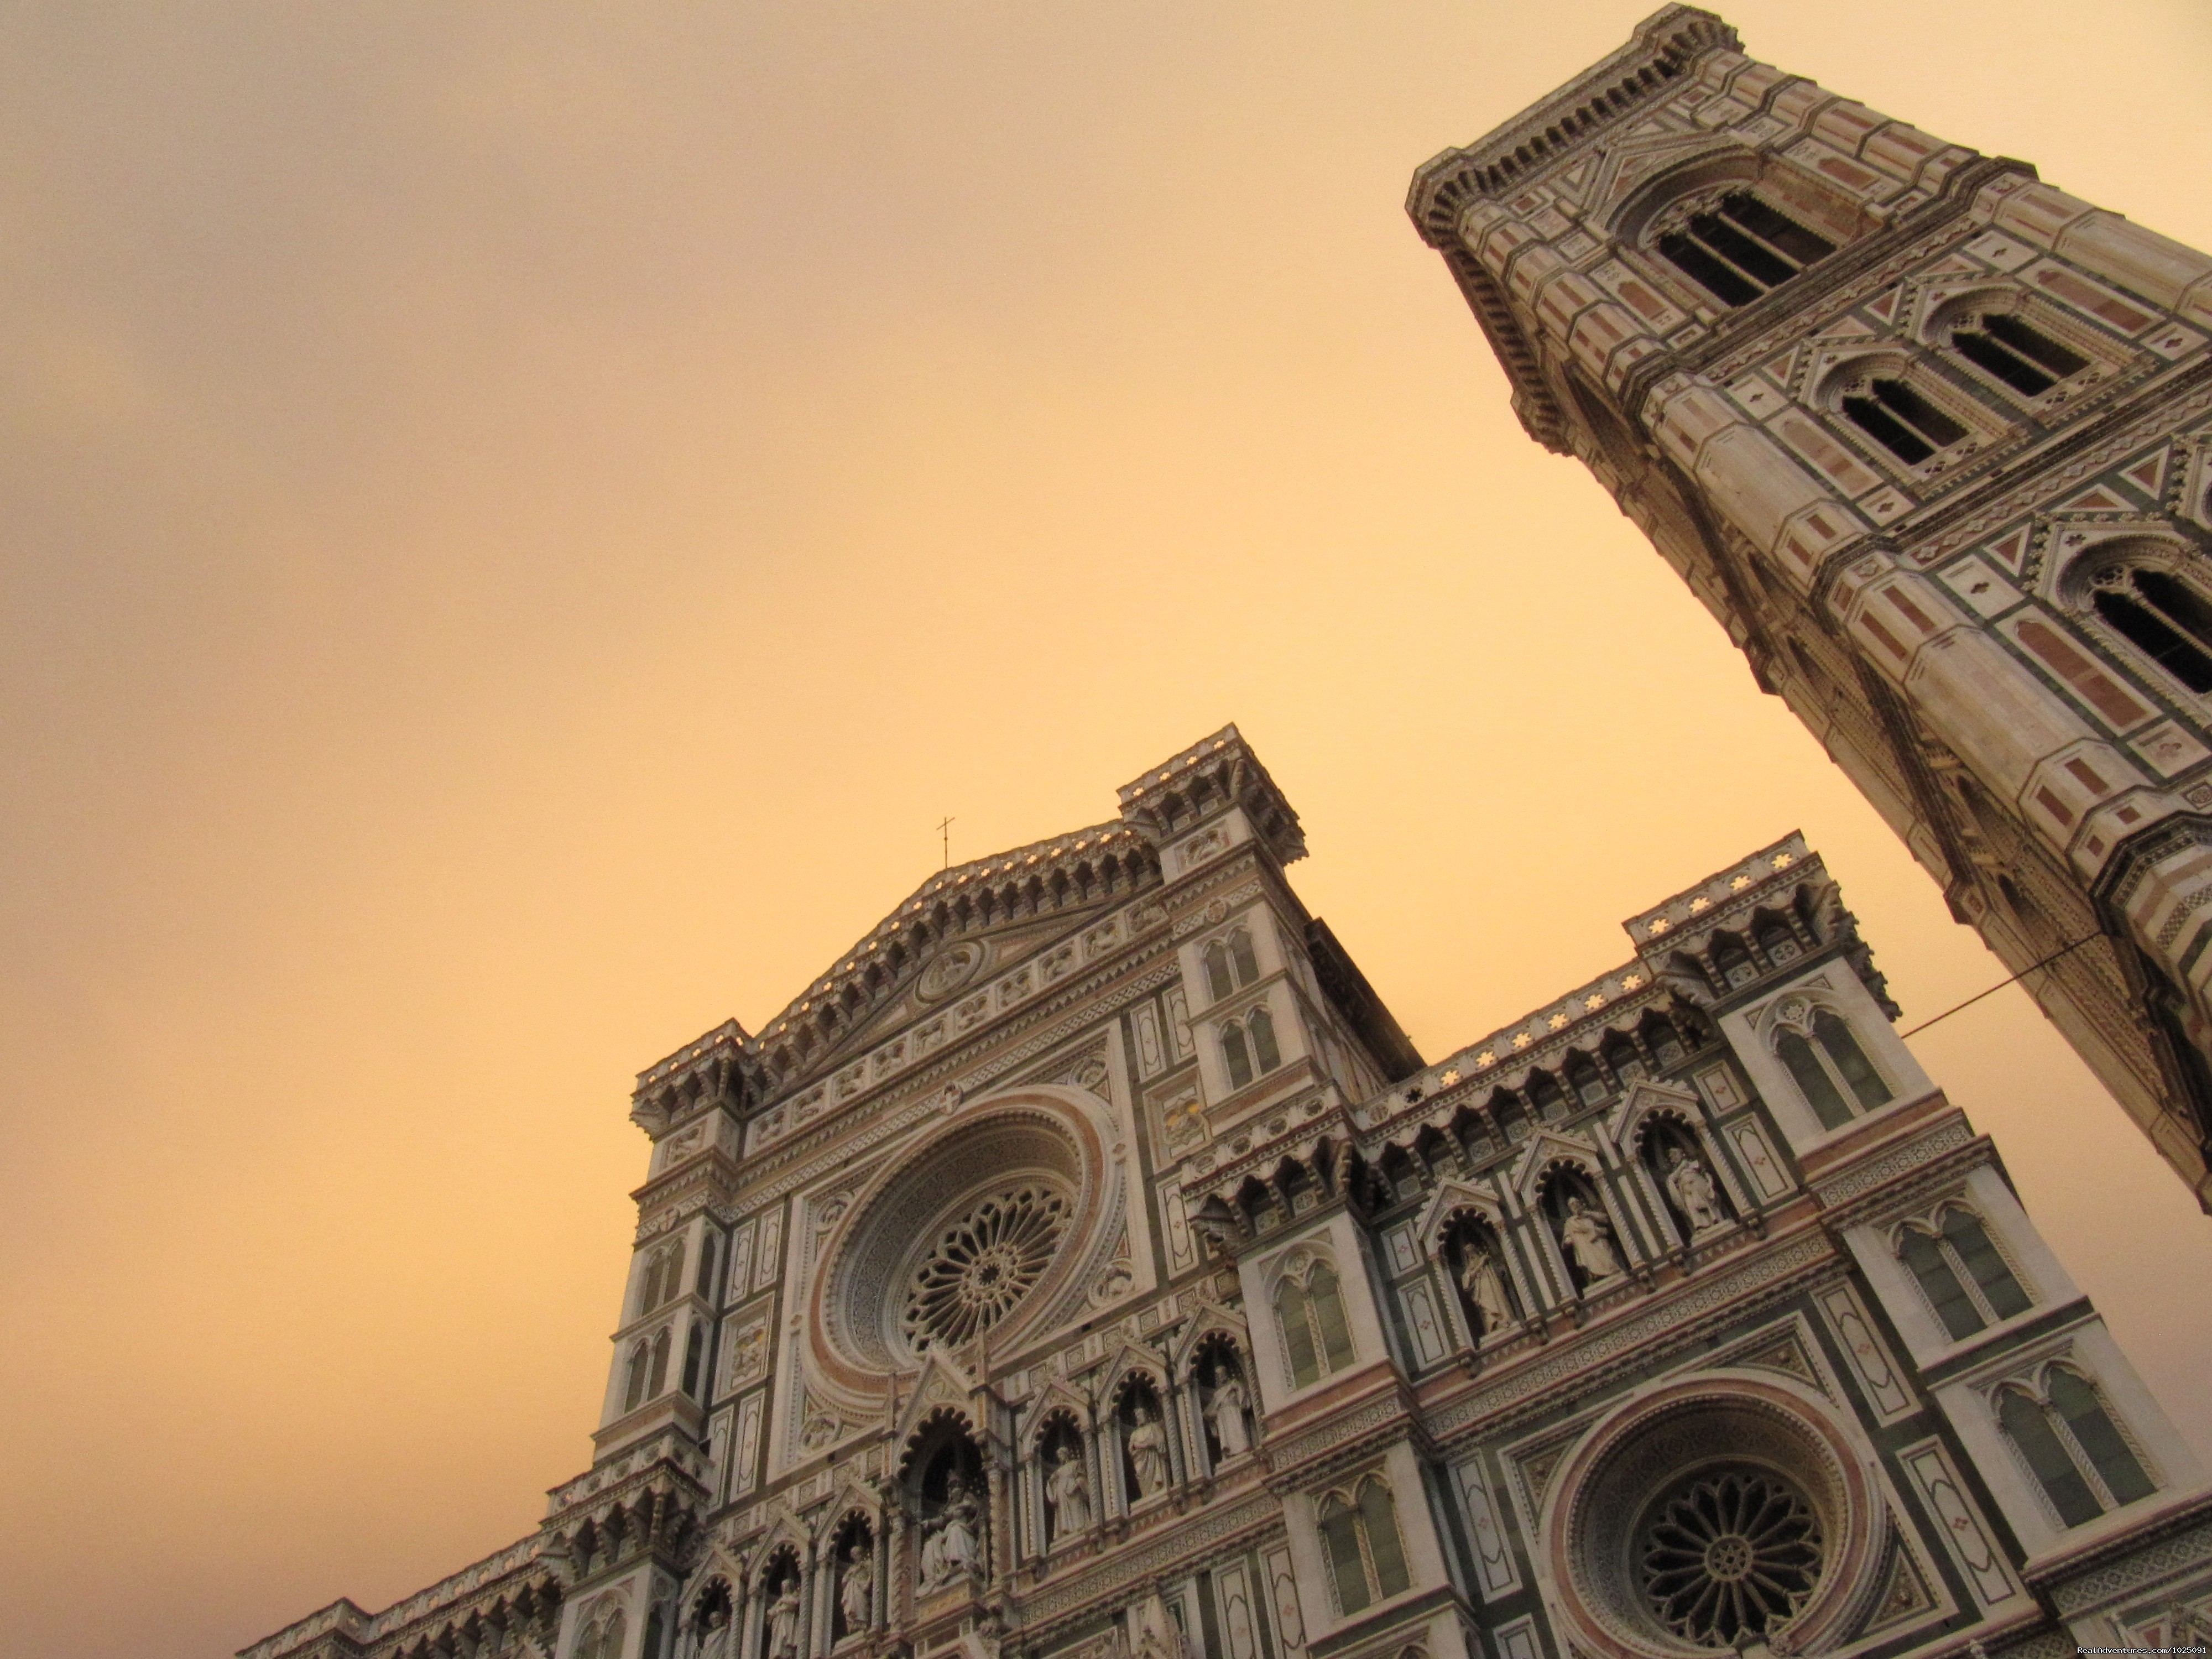 The Duomo - visited on our Original Walking Tour, Florence